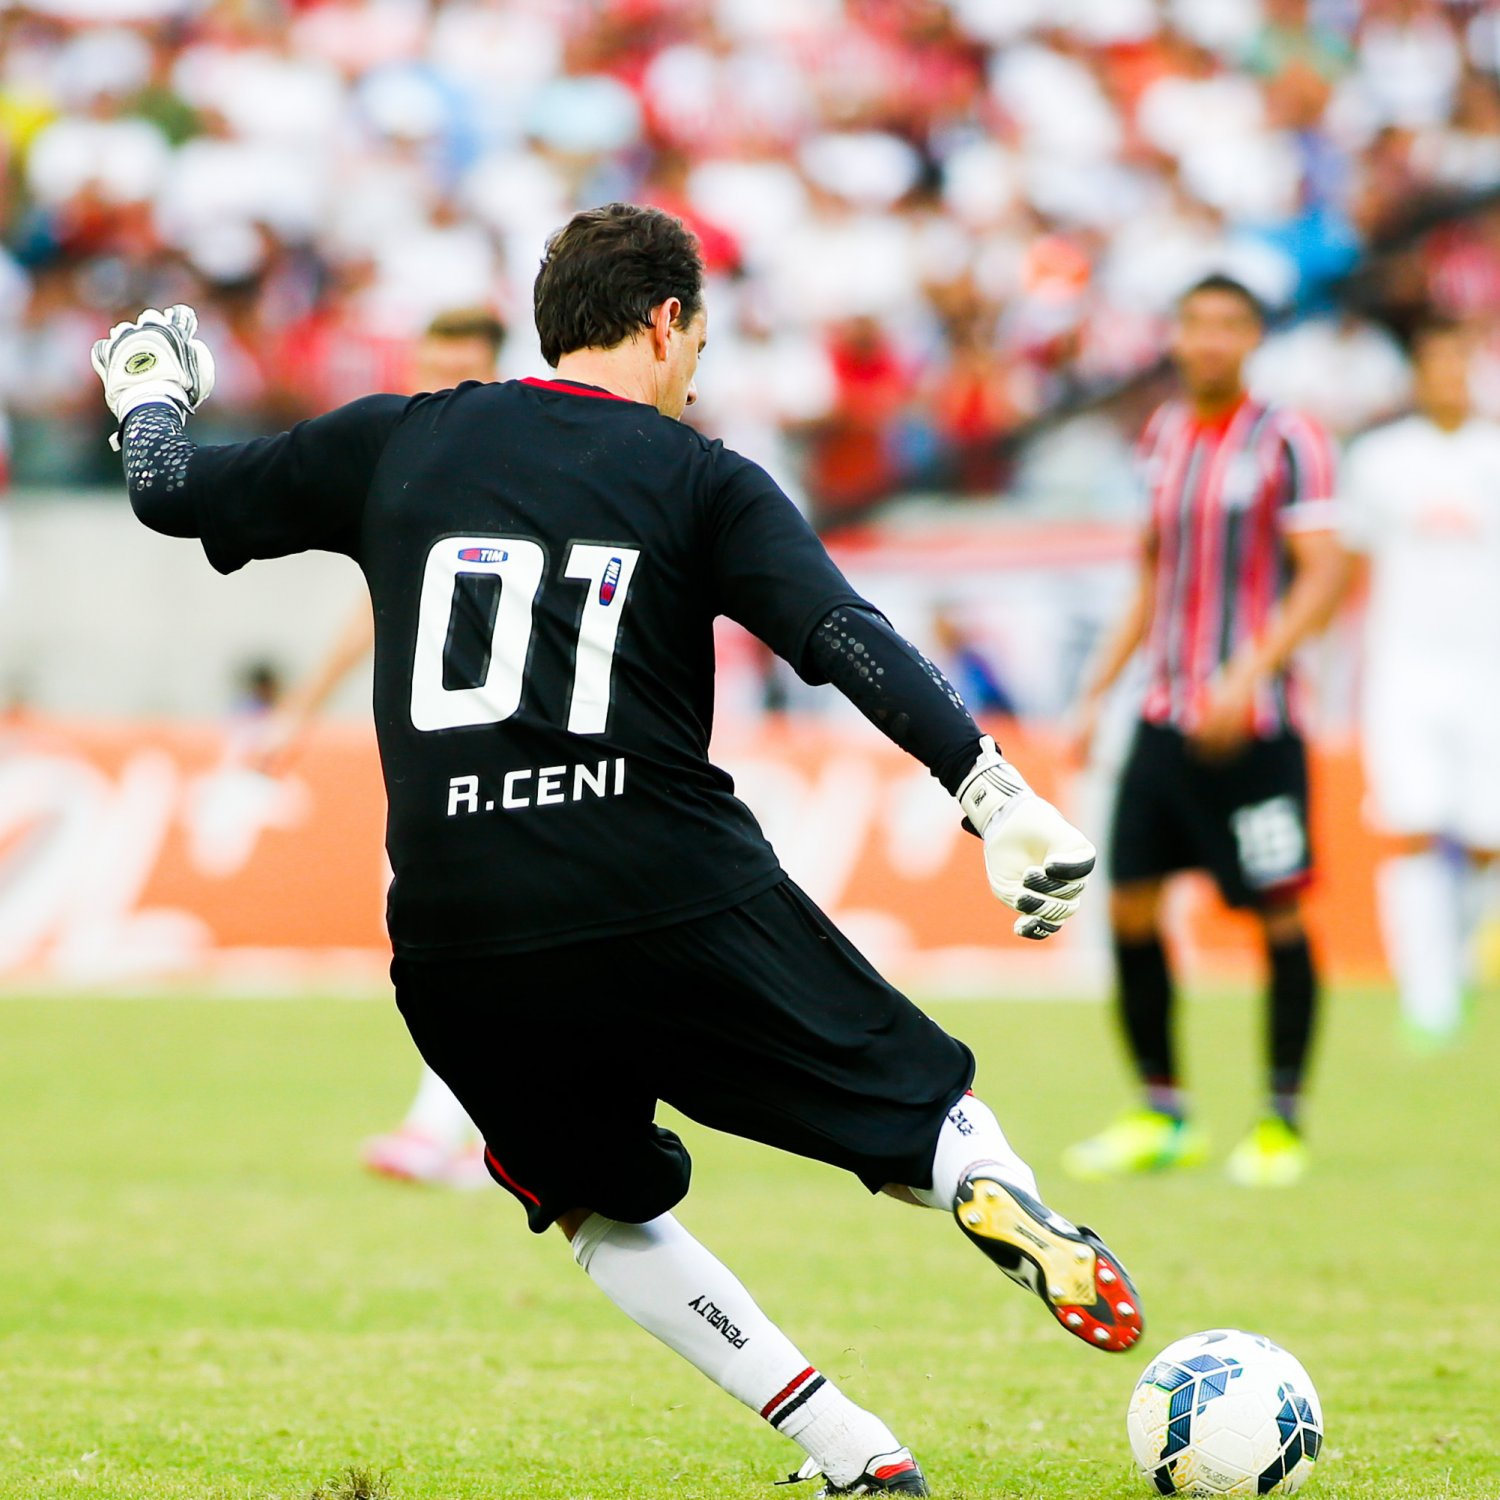 Campeonato Brasileiro Key Missing Players: Rogerio Ceni To Bow Out Of Sao Paulo And Brazilian